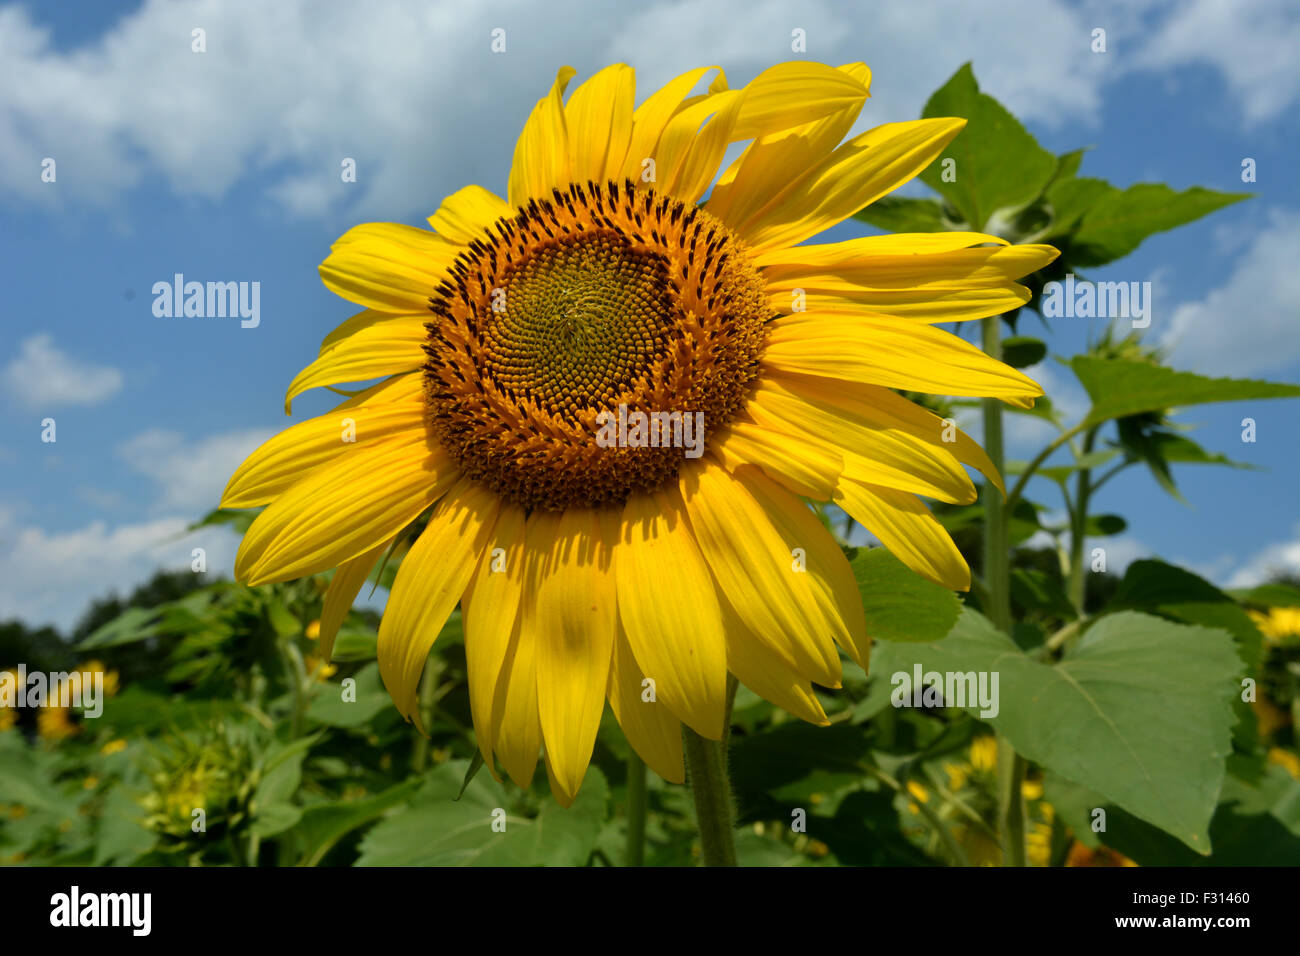 A sunflower stands out from the rest of the sunflowers in the field on a beautiful warm summer day. - Stock Image